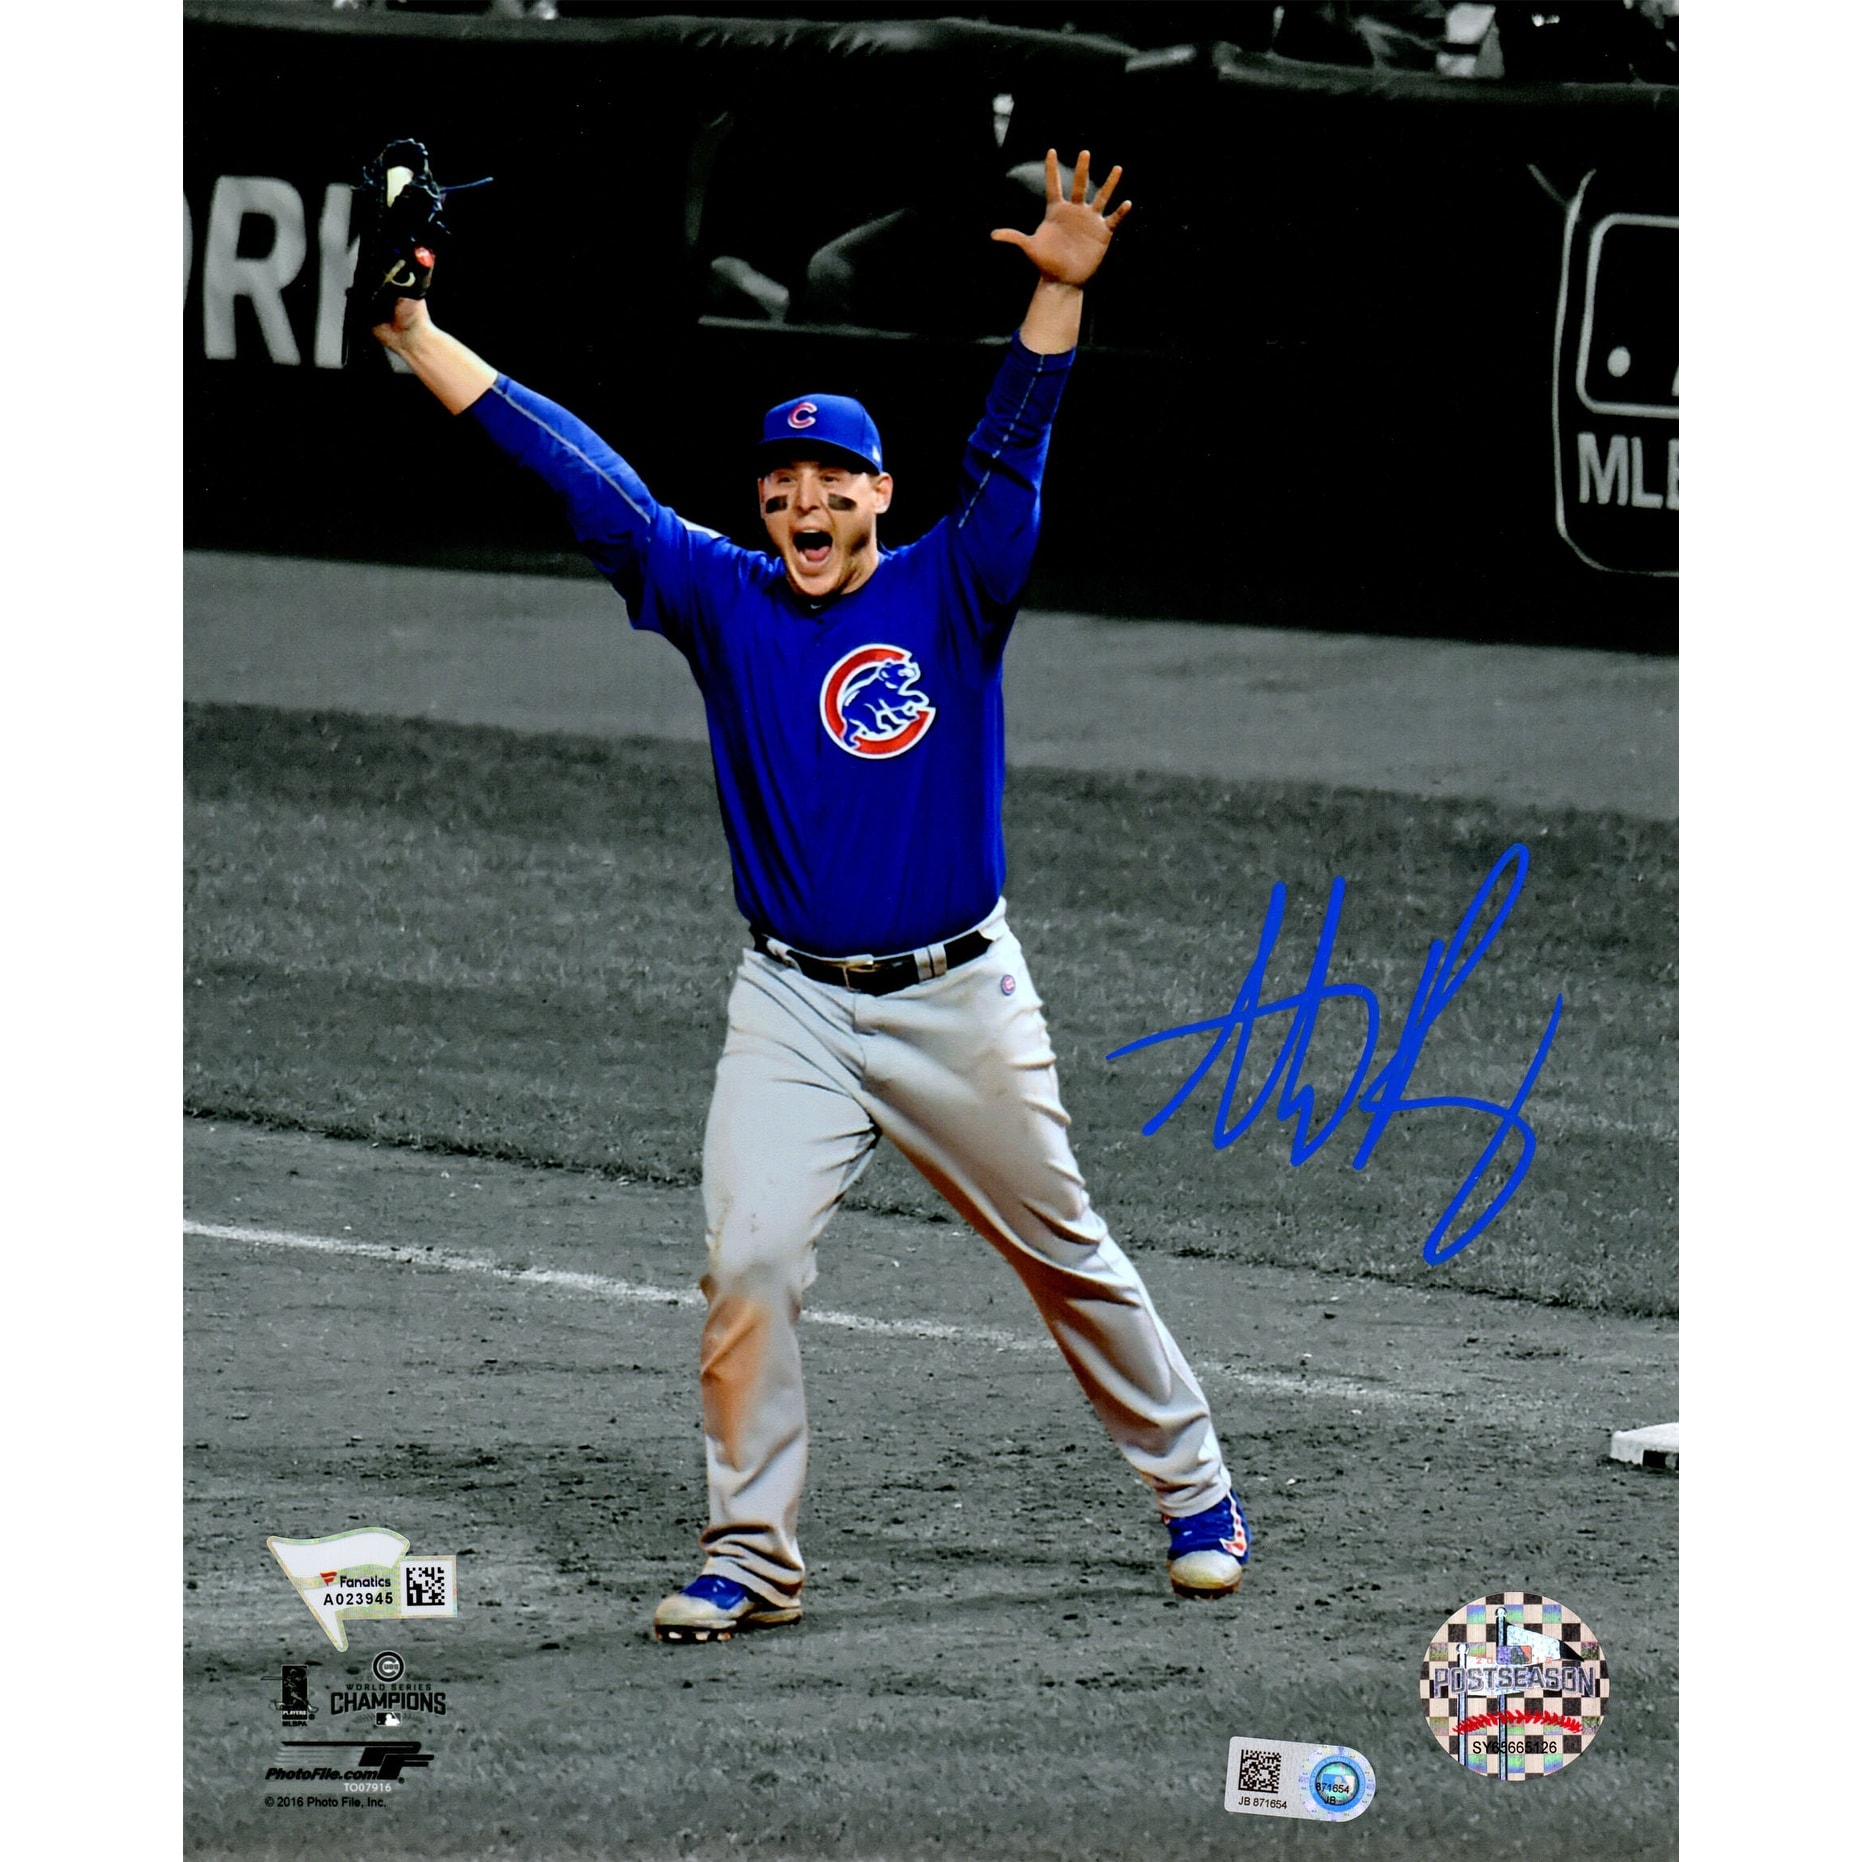 newest dfa1c fd65b Anthony Rizzo Chicago Cubs 2016 World Series Game 7 Final Out Spotlight  8x10 Photo